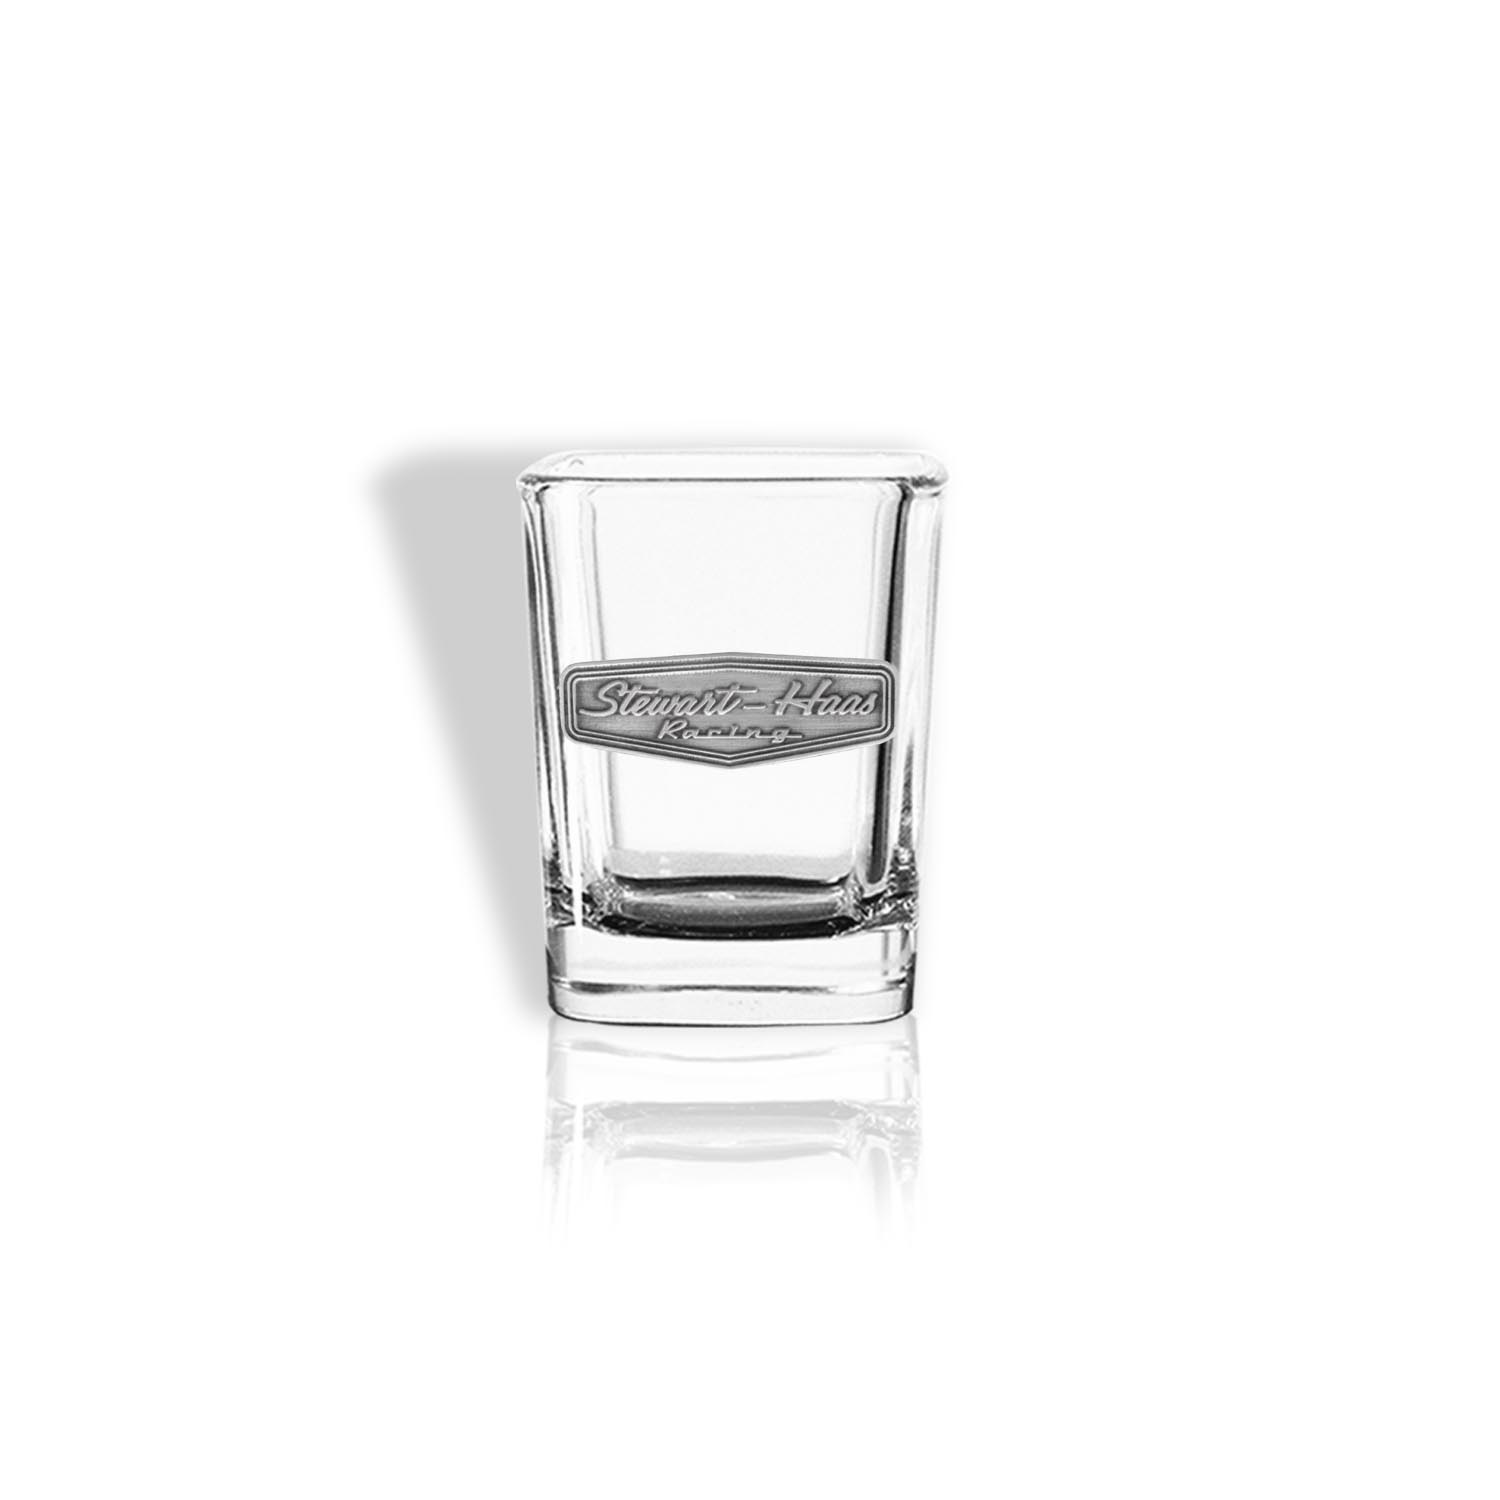 Exclusive Stewart-Haas Racing Square Shot Glass